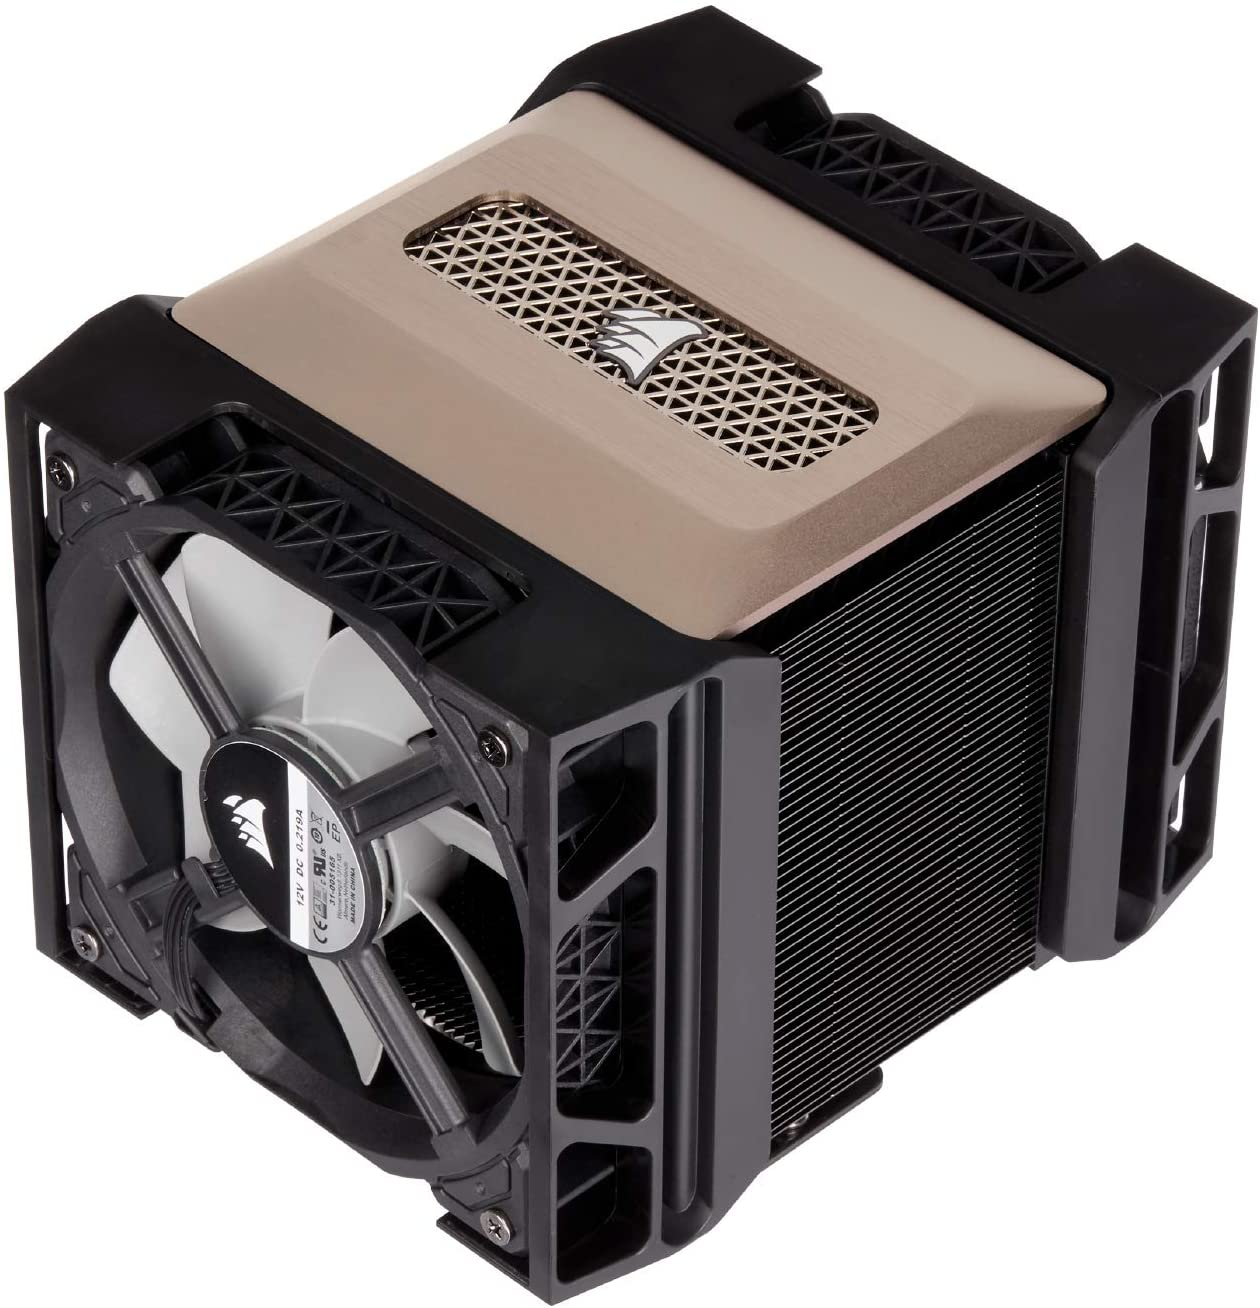 Corsair A500 High Performance Dual Fan CPU Cooler $129 was $139 @ Amazon